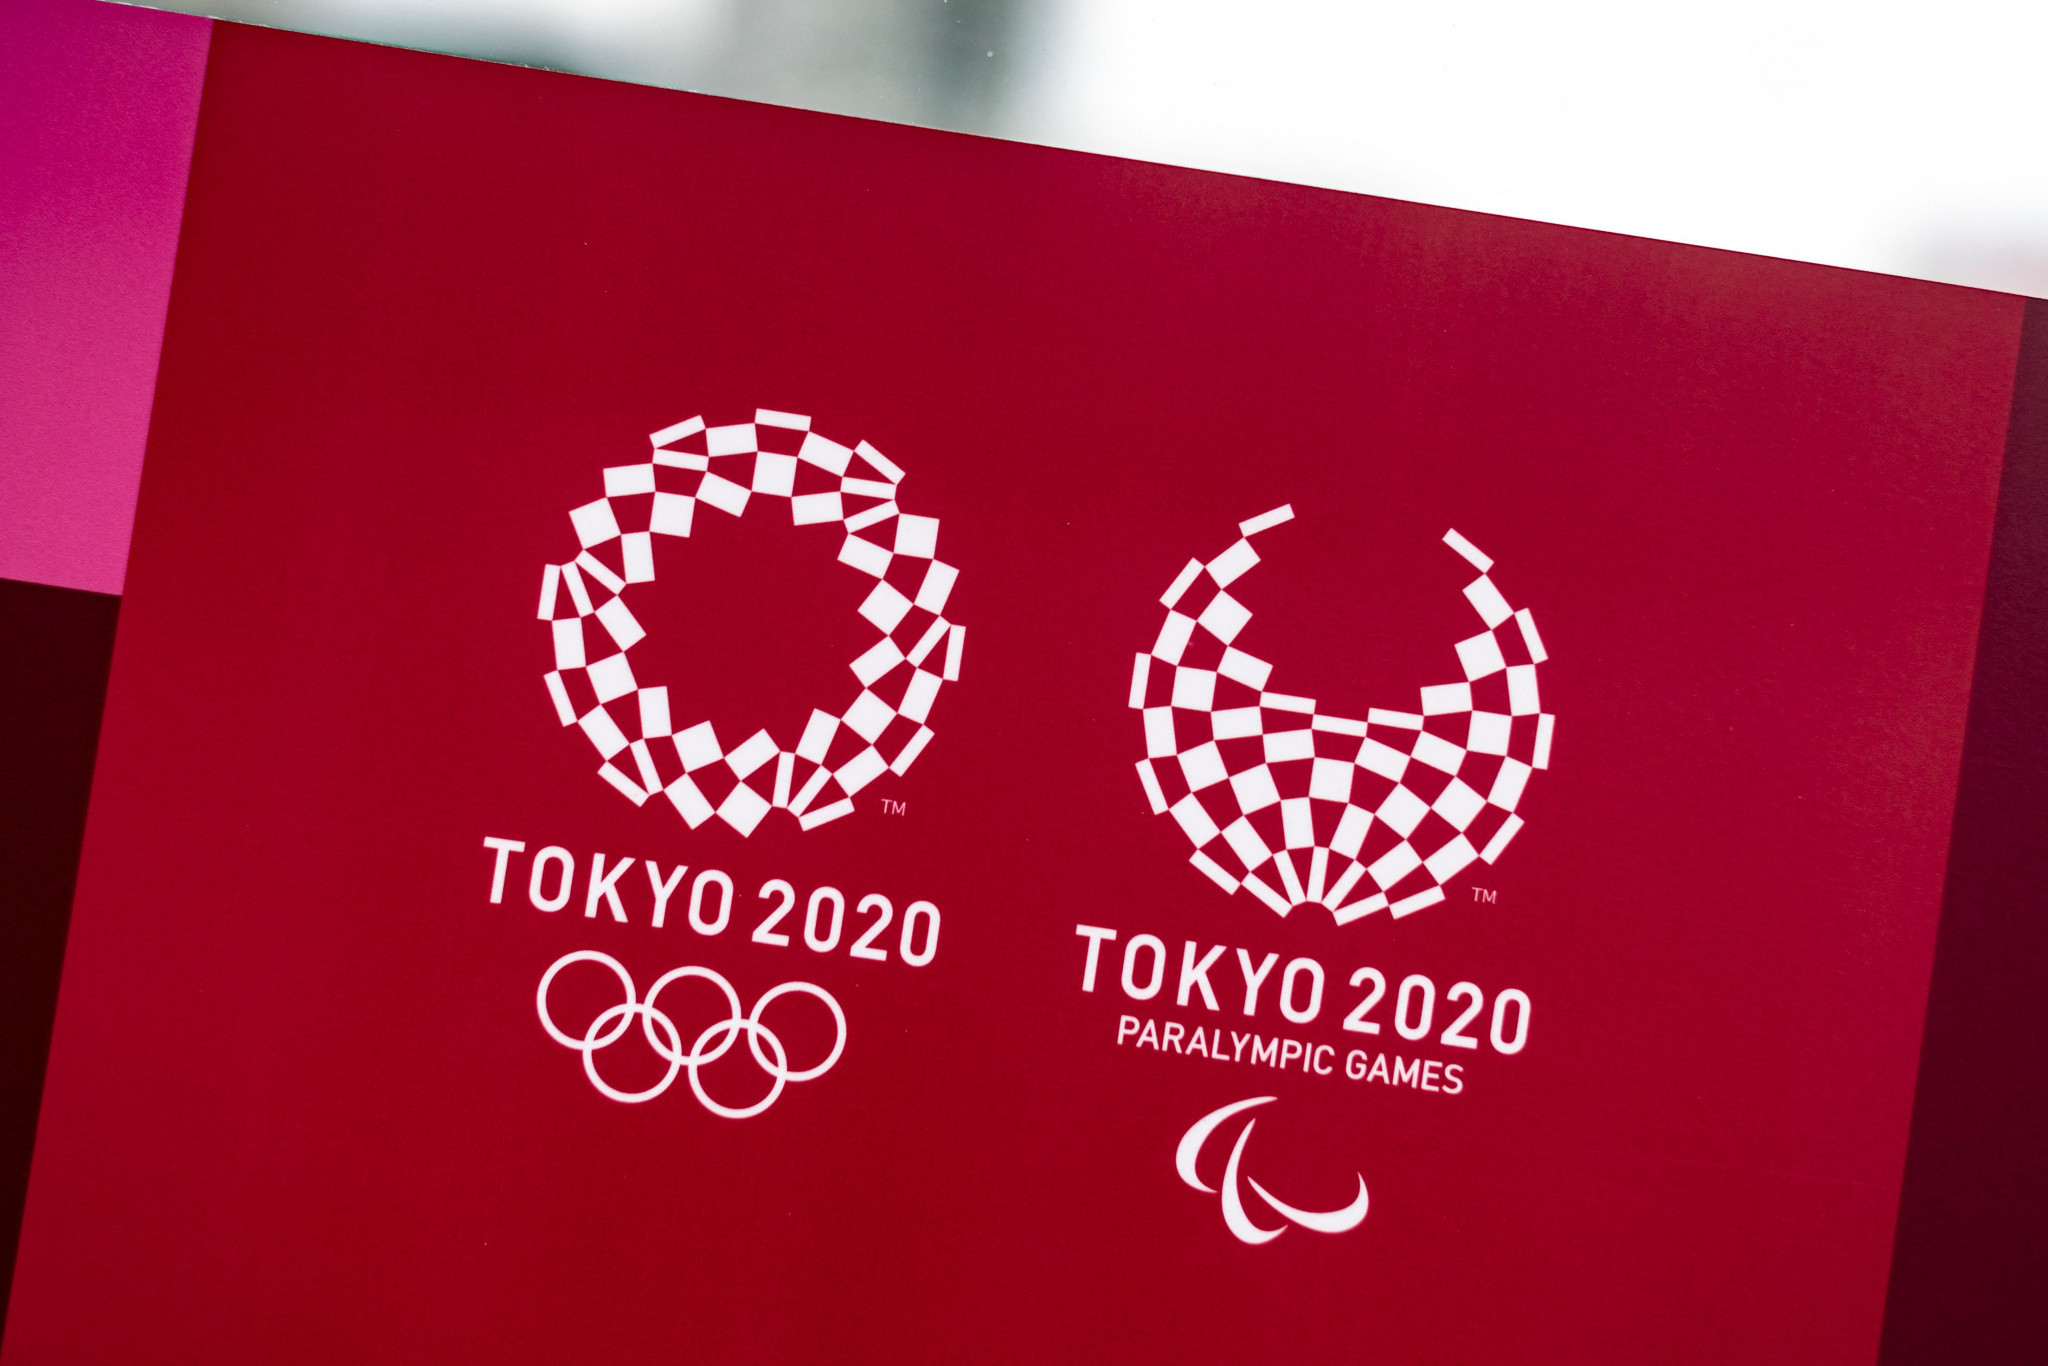 Athleten Deutschland publishes position paper on basic requirements for Tokyo 2020